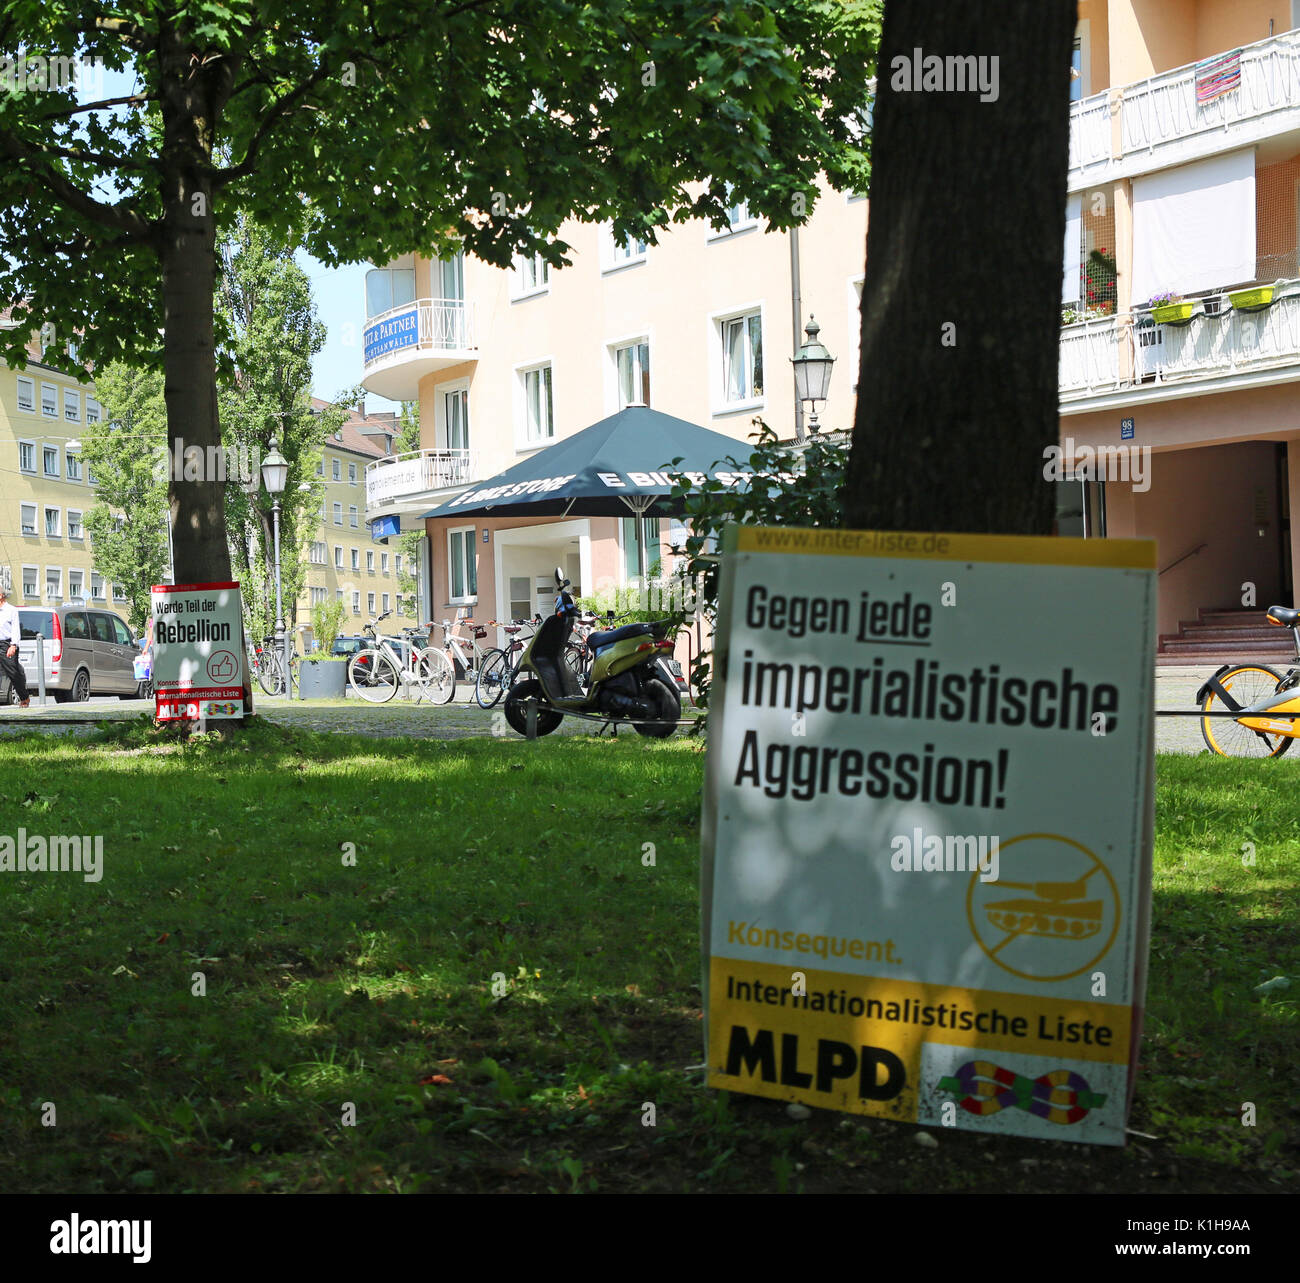 Campaign posters of the MLPD (Marxist-Leninist Party of Germany) against 'imperialism'. (Photo by Alexander Pohl / Pacific Press) - Stock Image